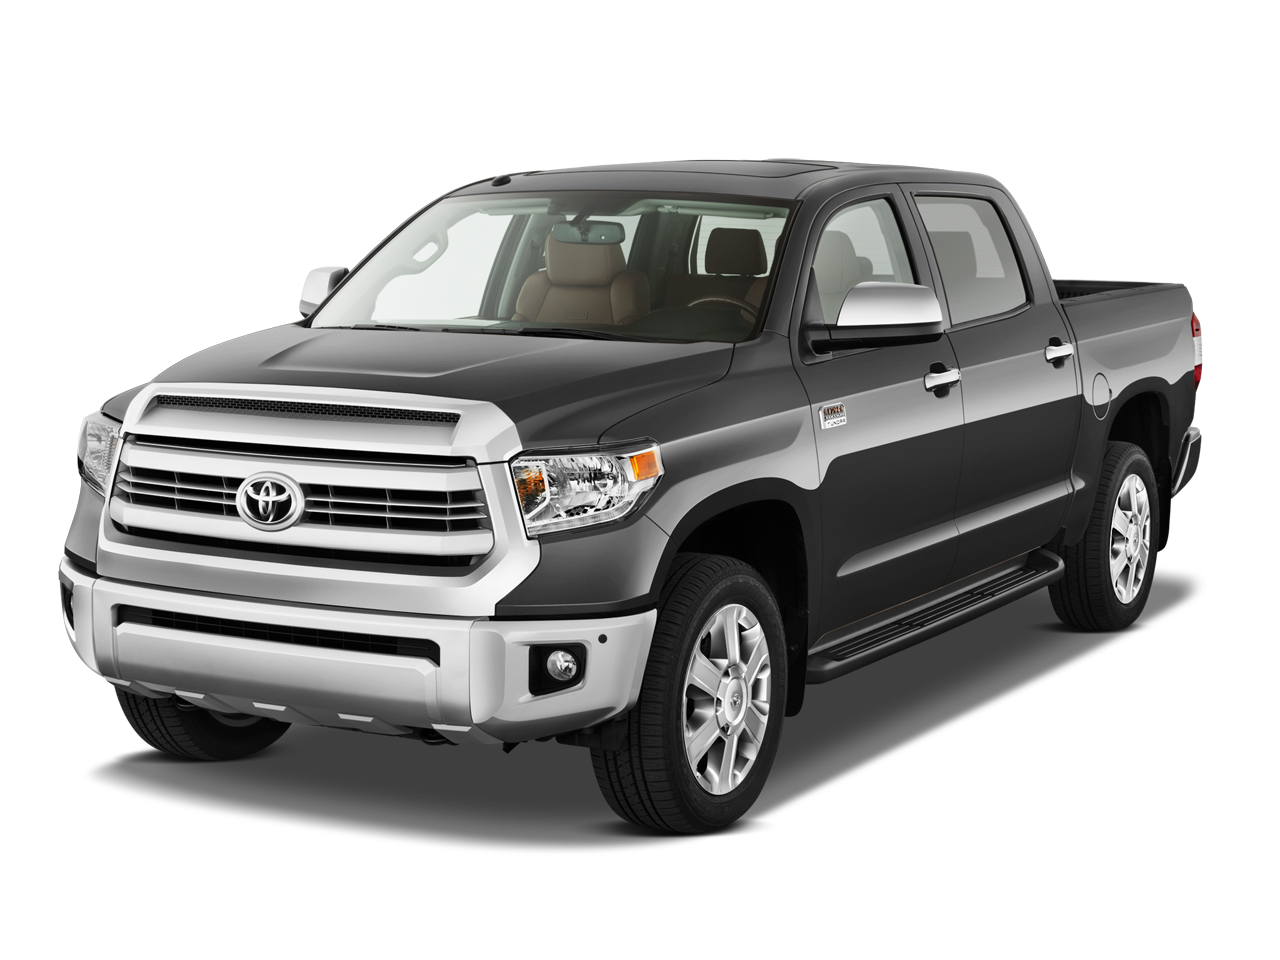 new 2017 toyota tundra 1794 edition crew max pickup near pierre sd gateway toyota. Black Bedroom Furniture Sets. Home Design Ideas